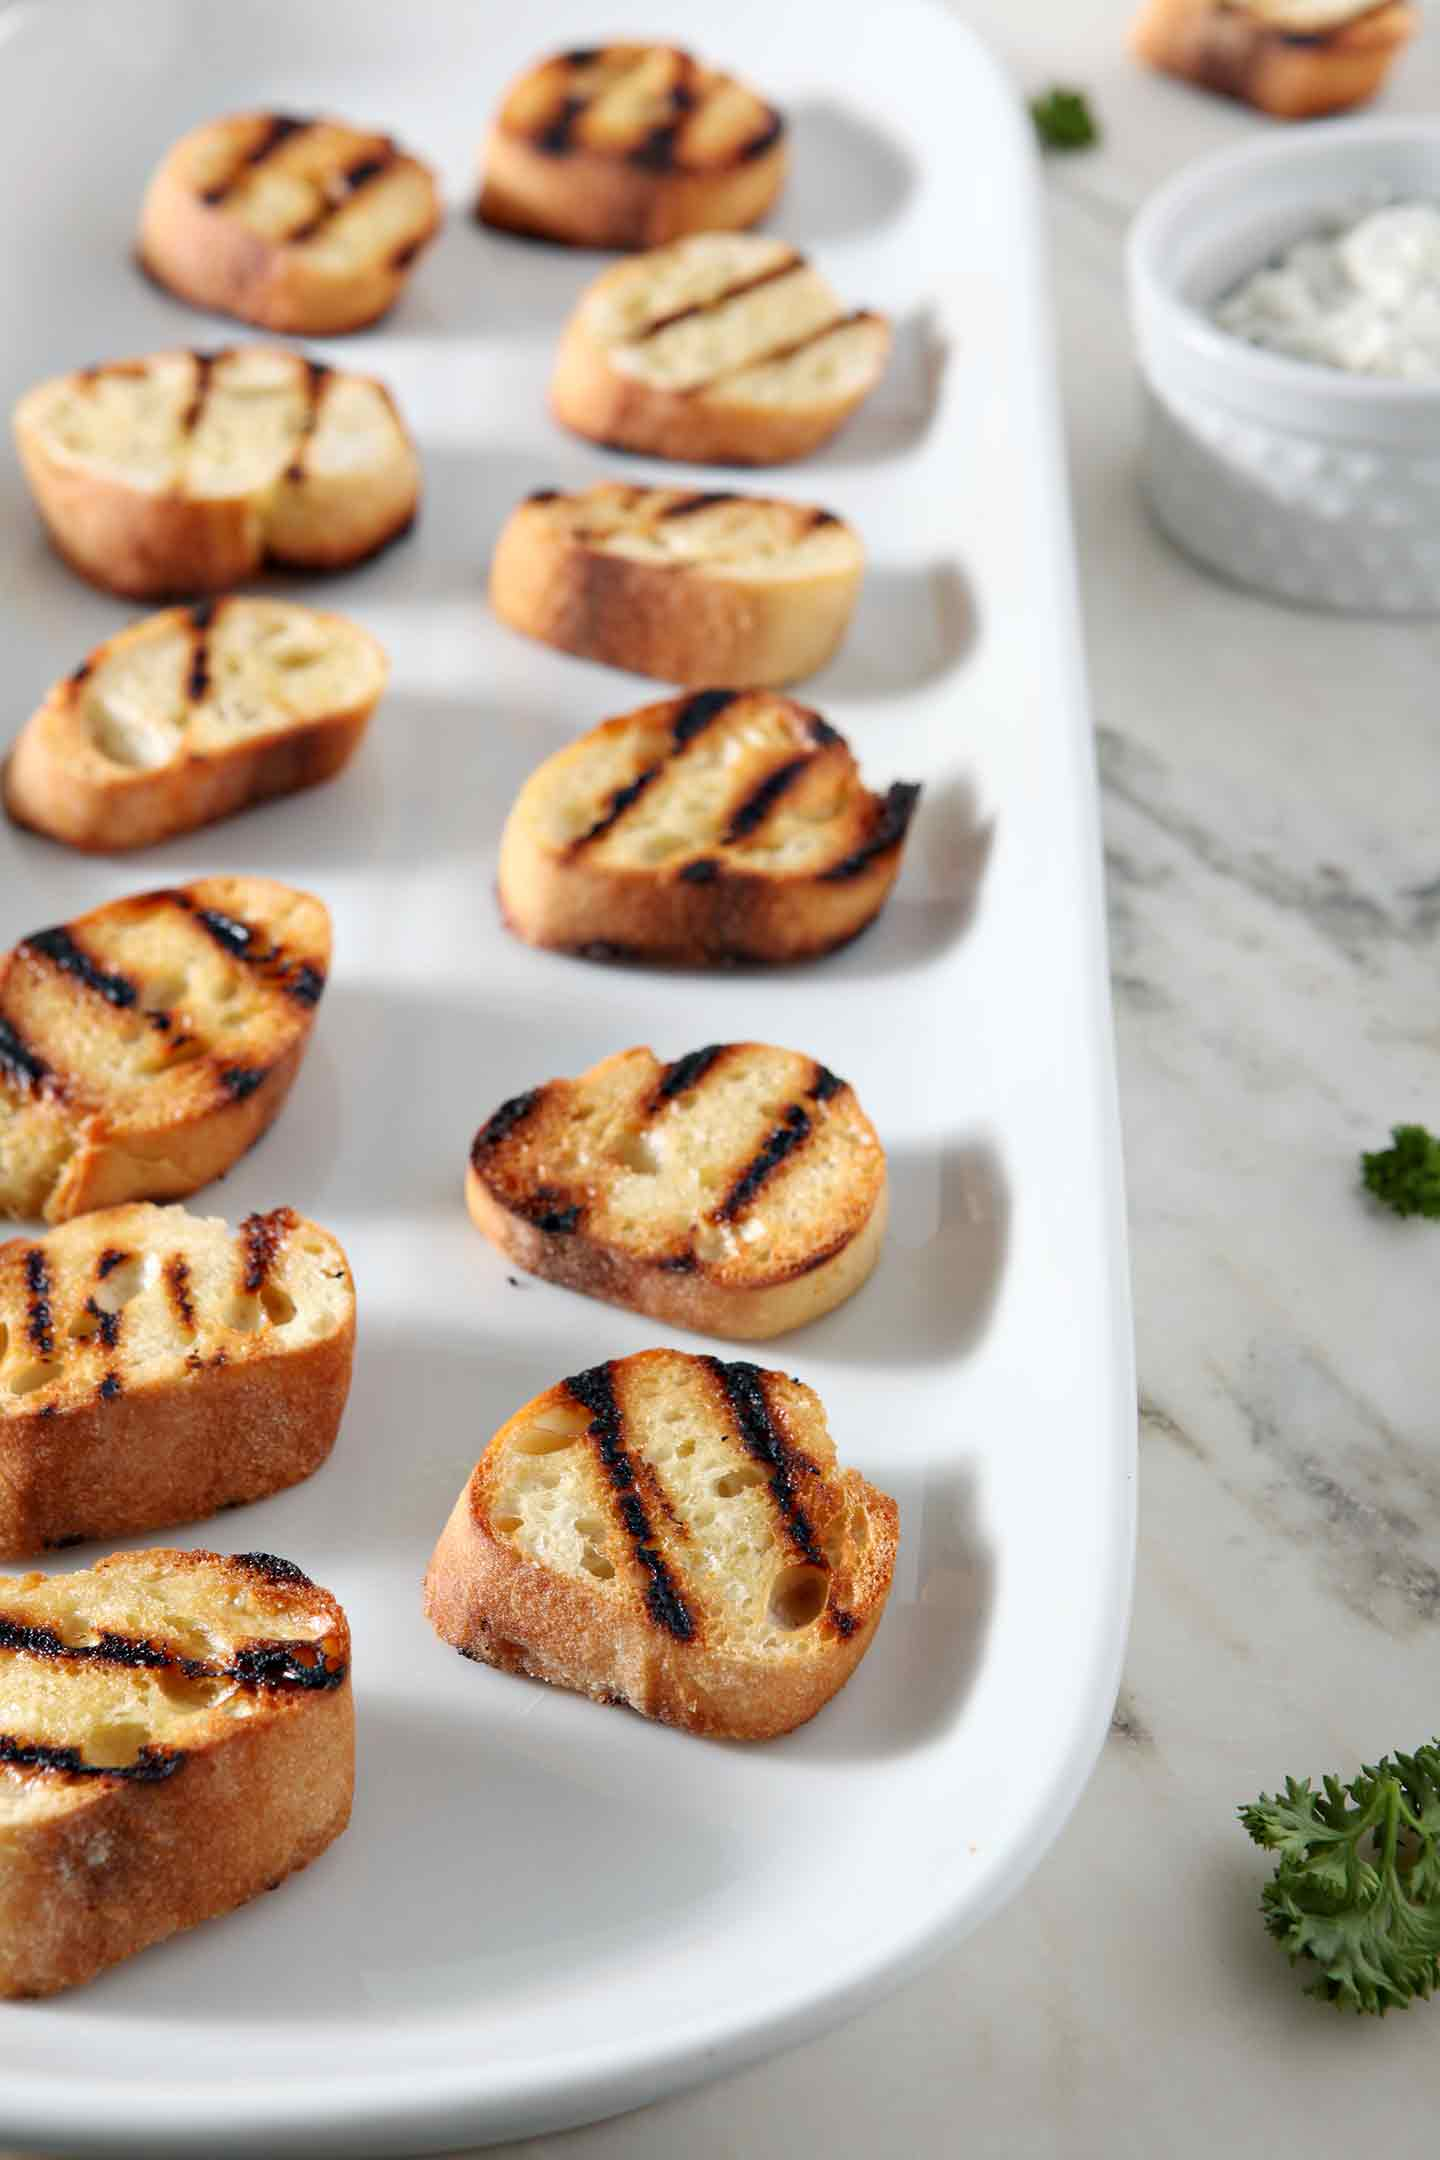 Grilled bruschetta rounds sit on a white porcelain platter before being topped with ingredients